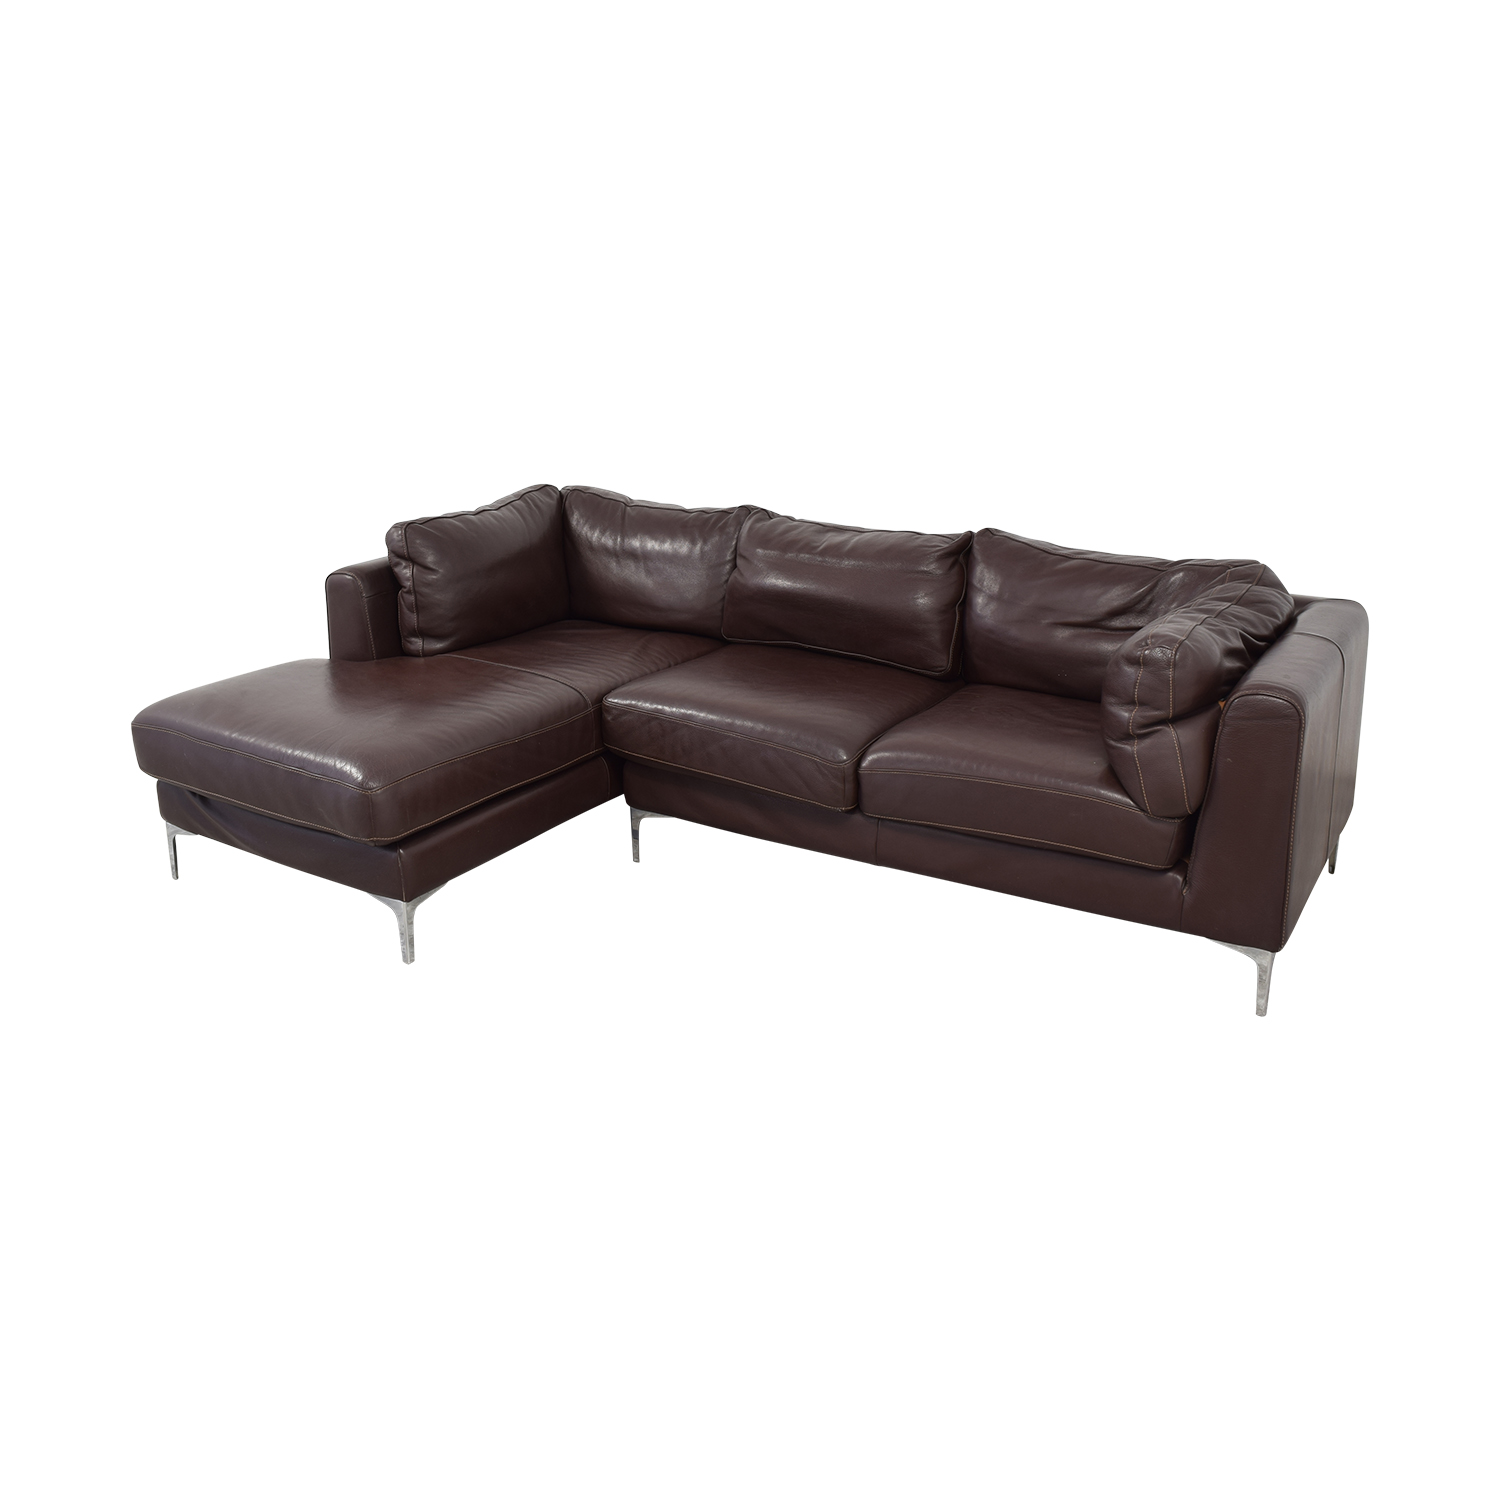 buy Design Within Reach Nicoletti Chaise Sectional Sofa Design Within Reach Sofas